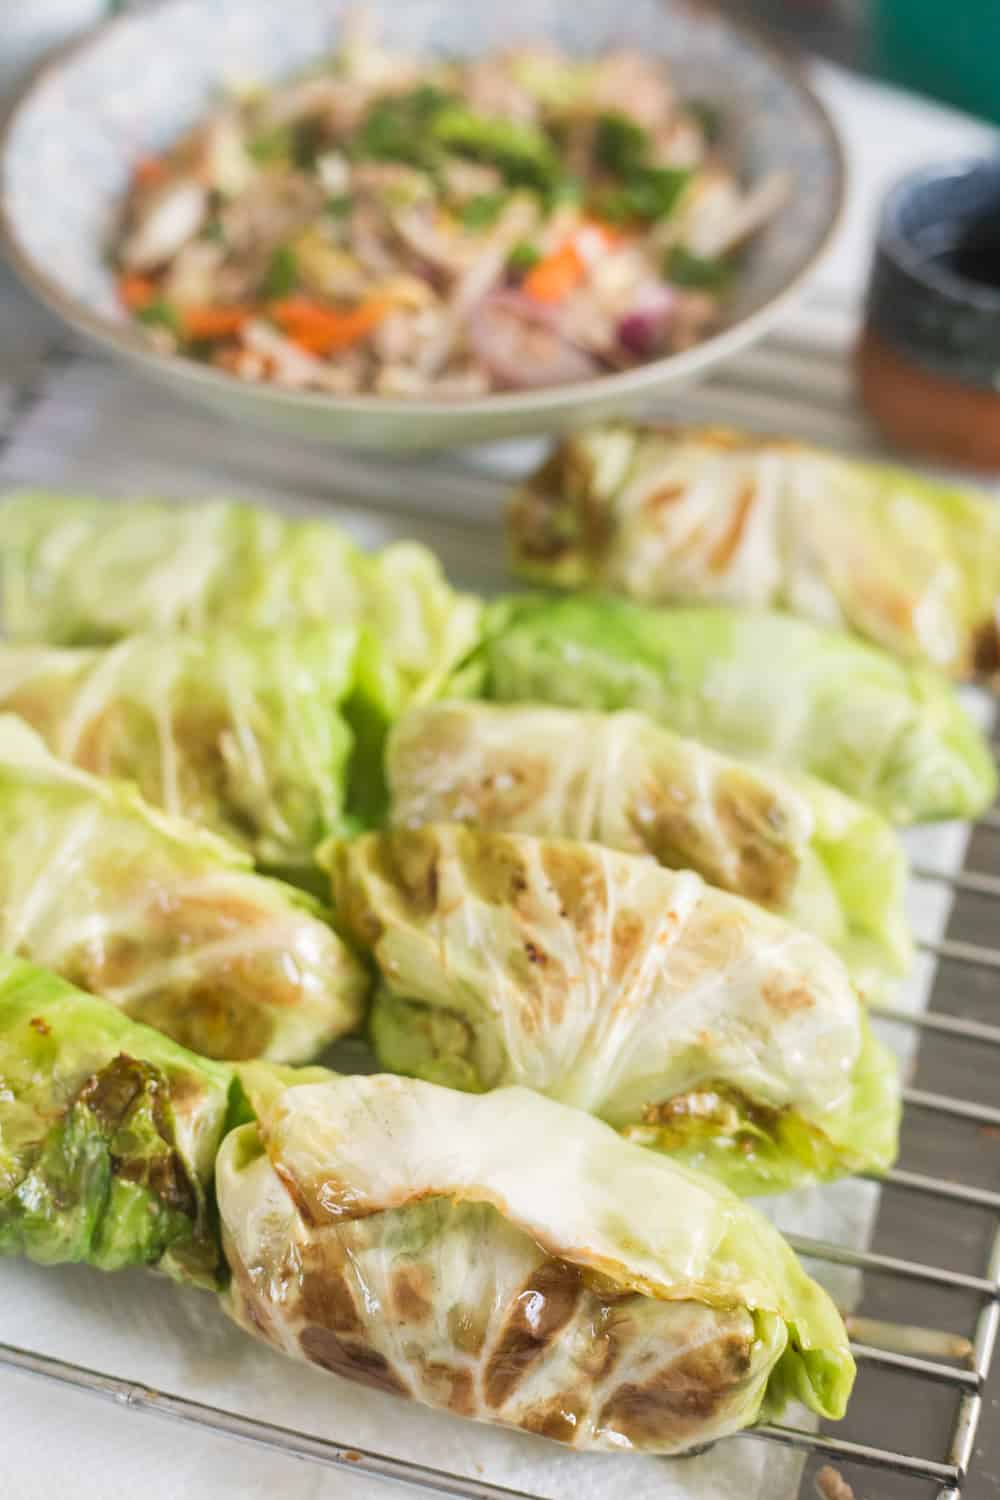 Keto Egg Roll In A Bowl Or Wrap Cabbage Rolls The Hungry Elephant